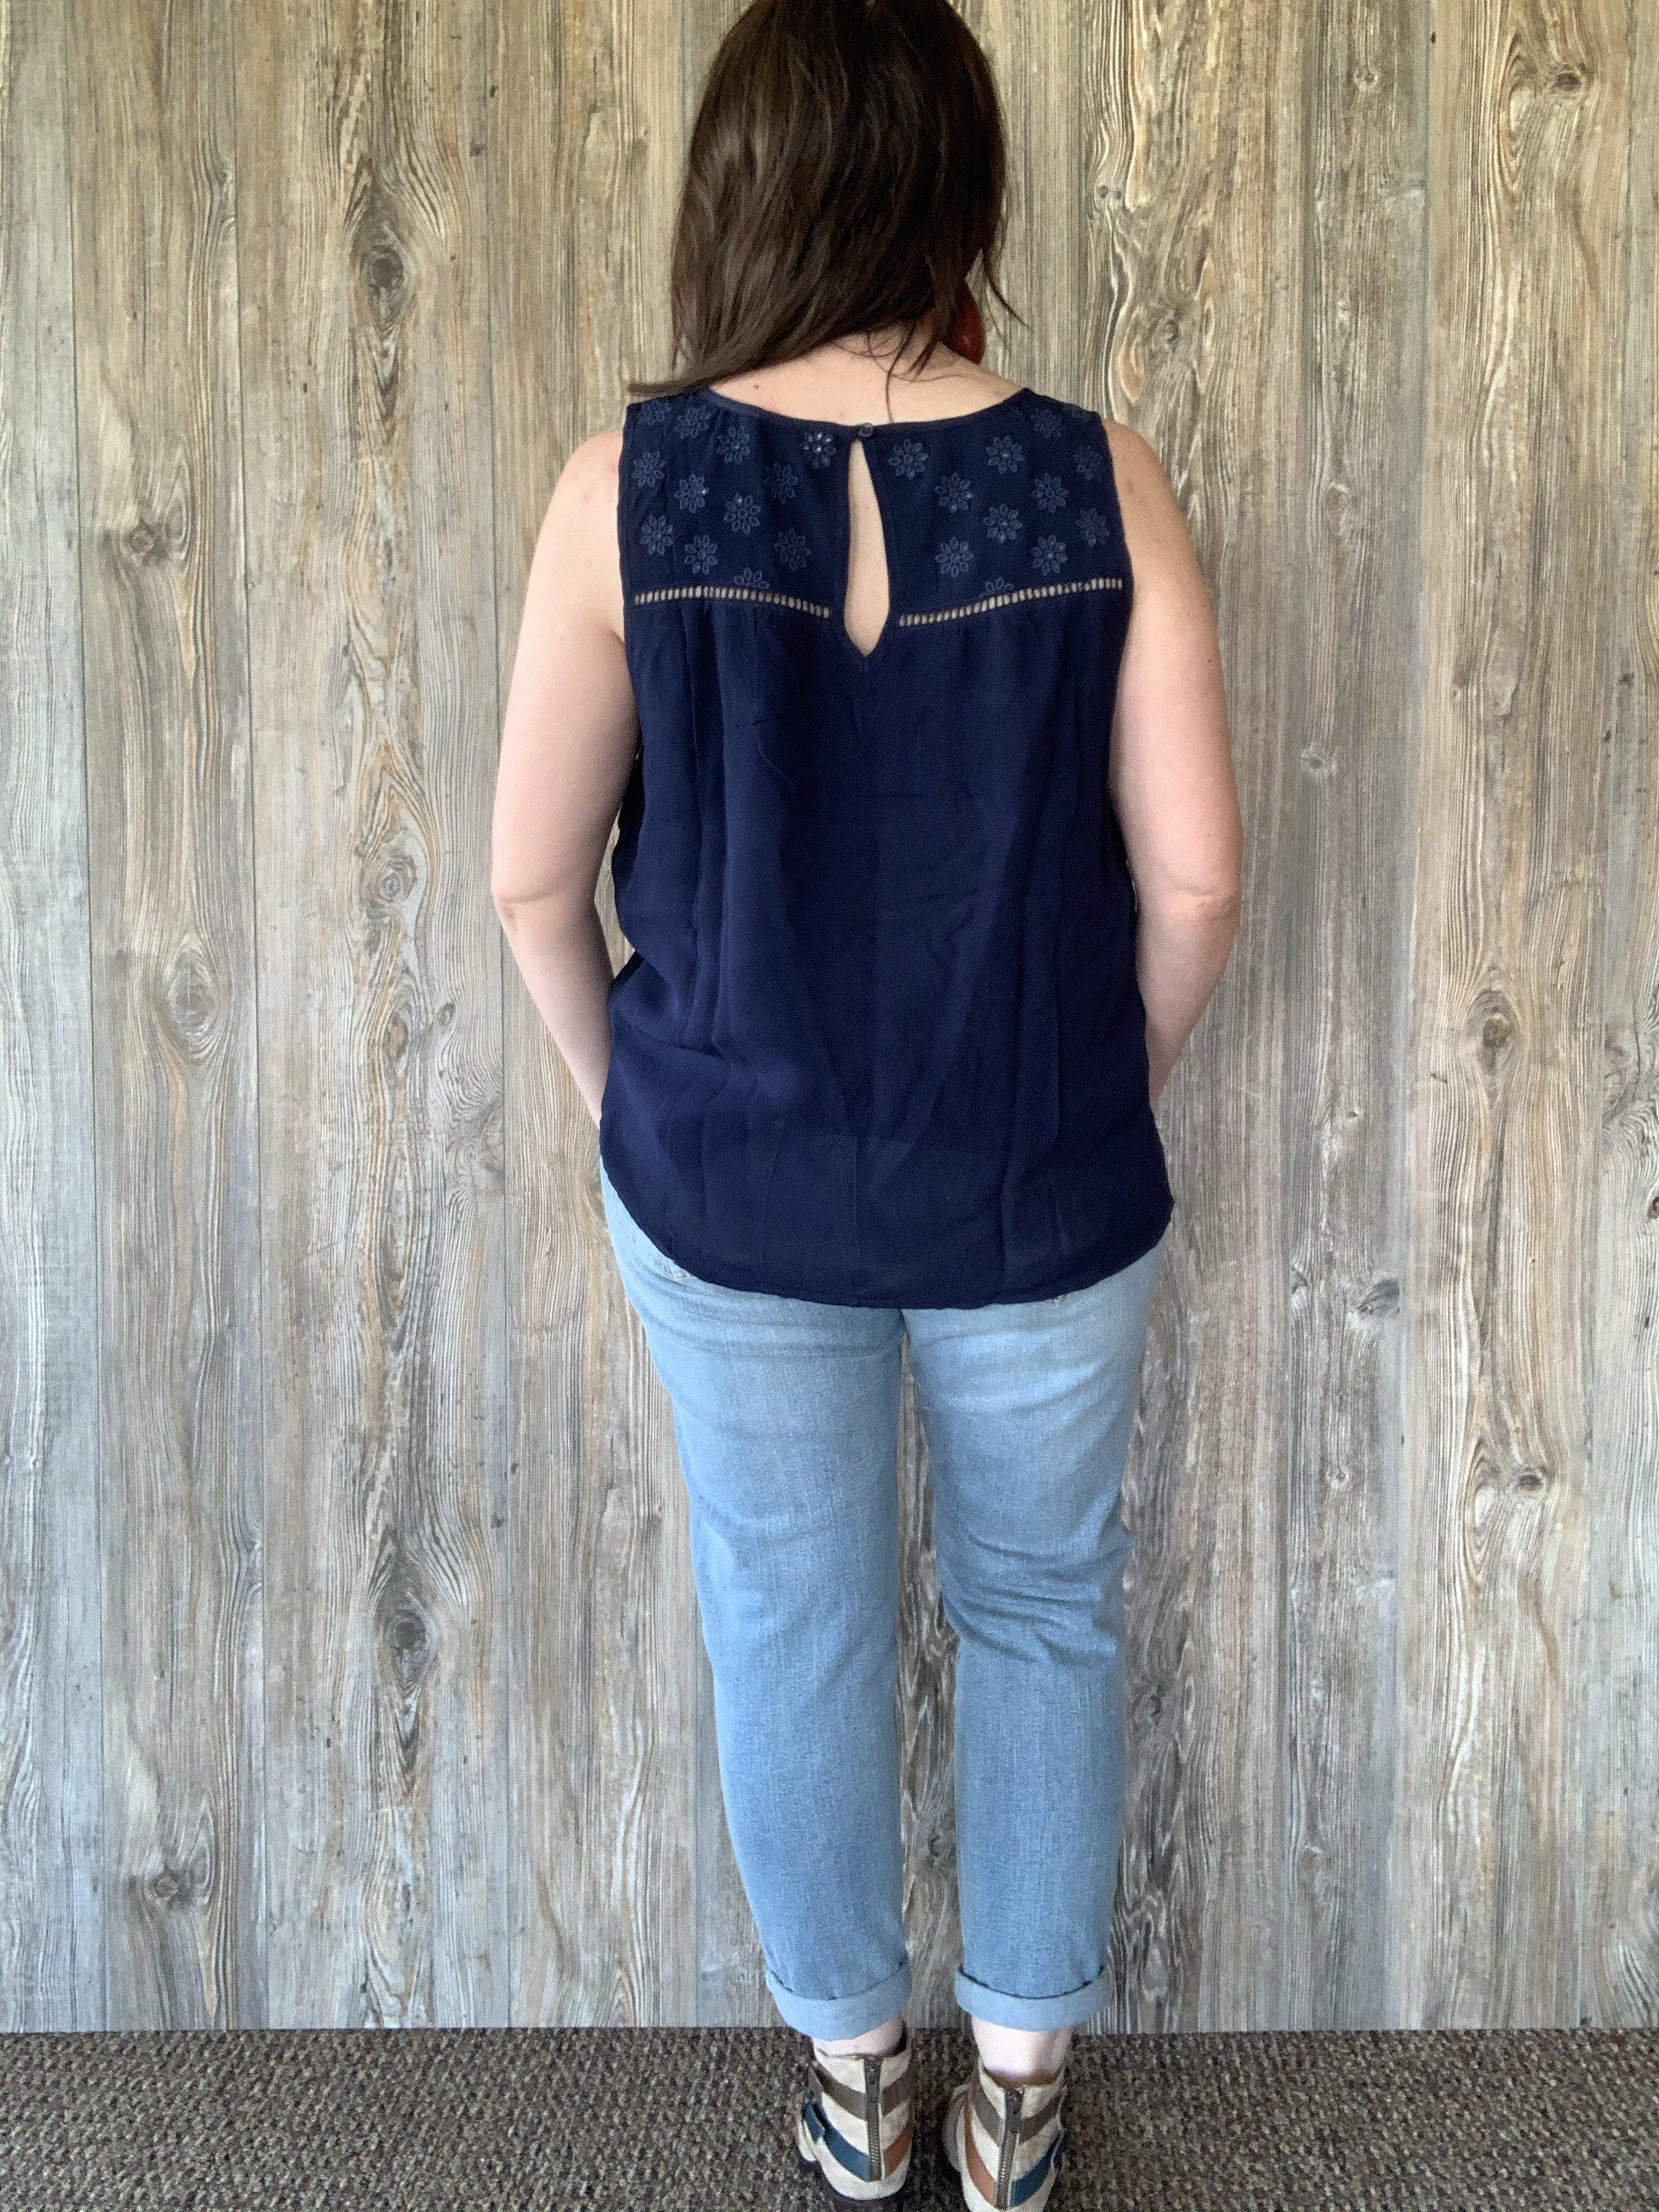 Navy Tank Top with Lace